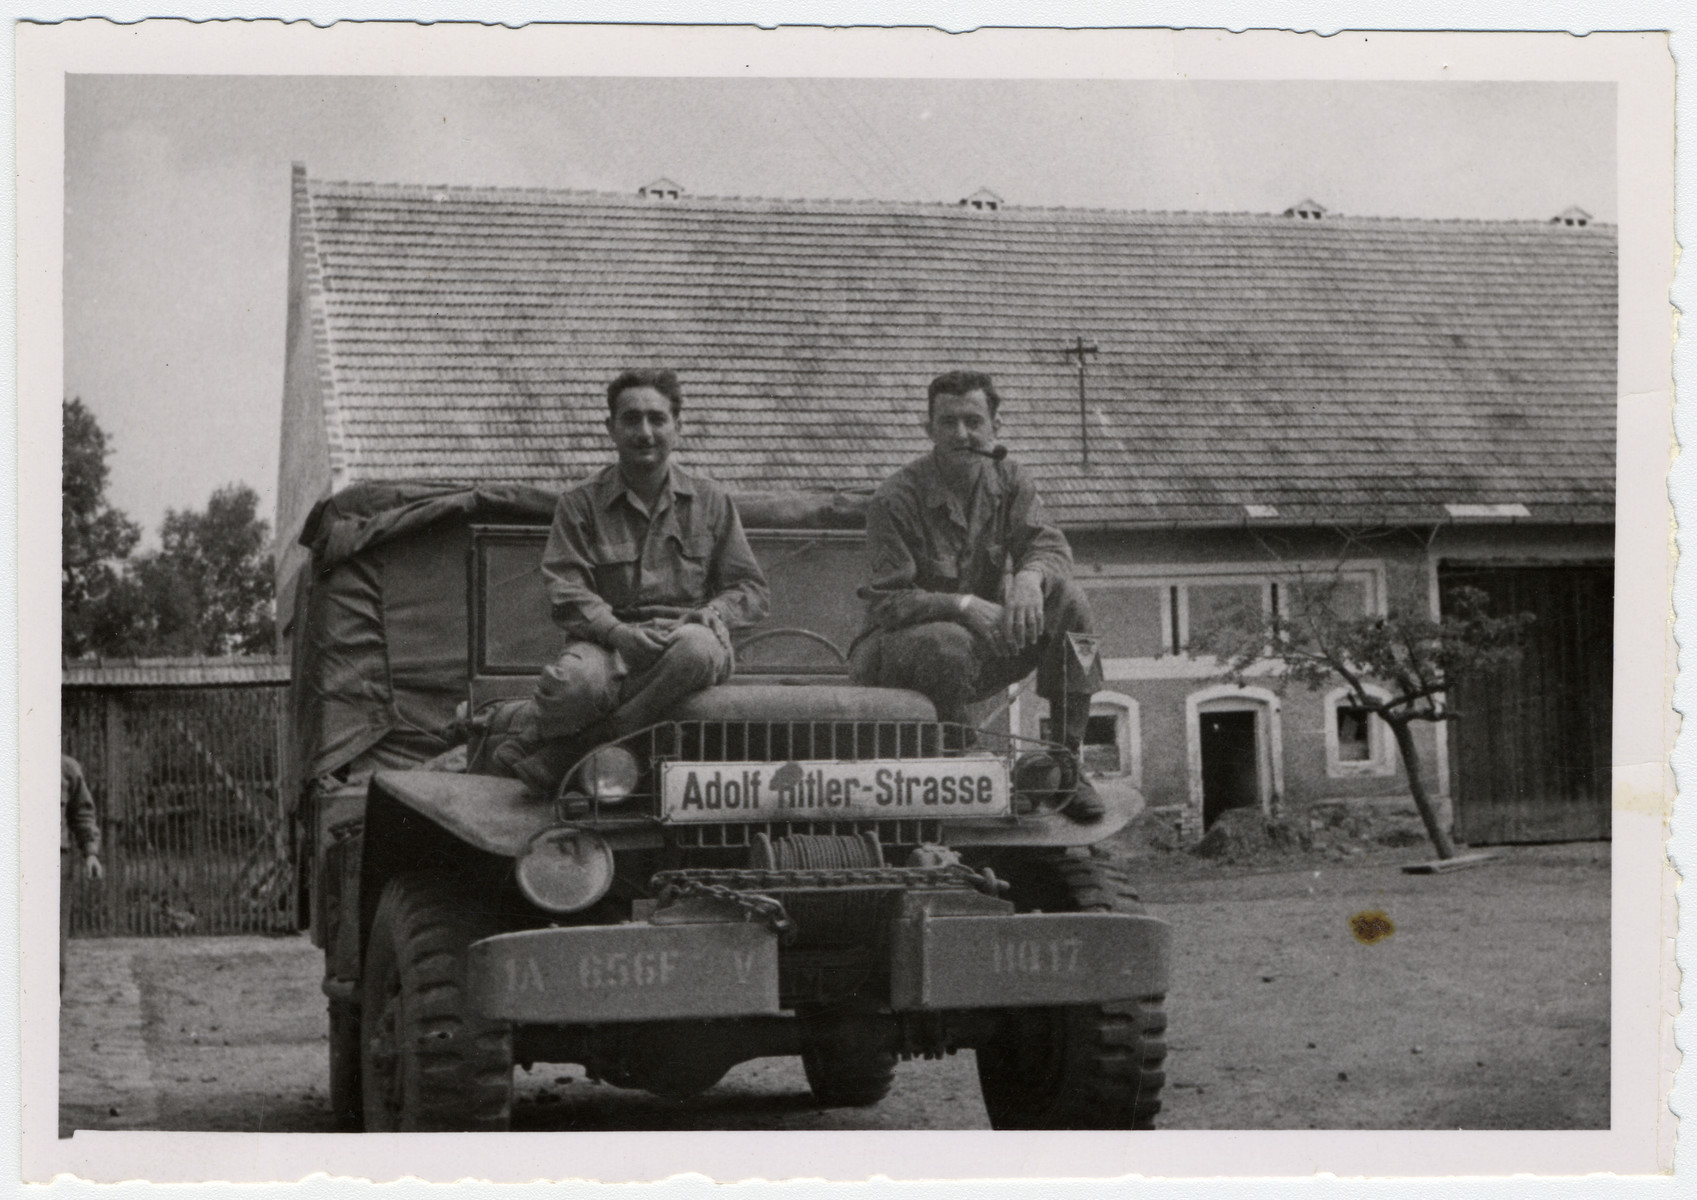 Two American soldiers ride on a military car decorated with a confiscated Adolf Hitler Strasse street sign.